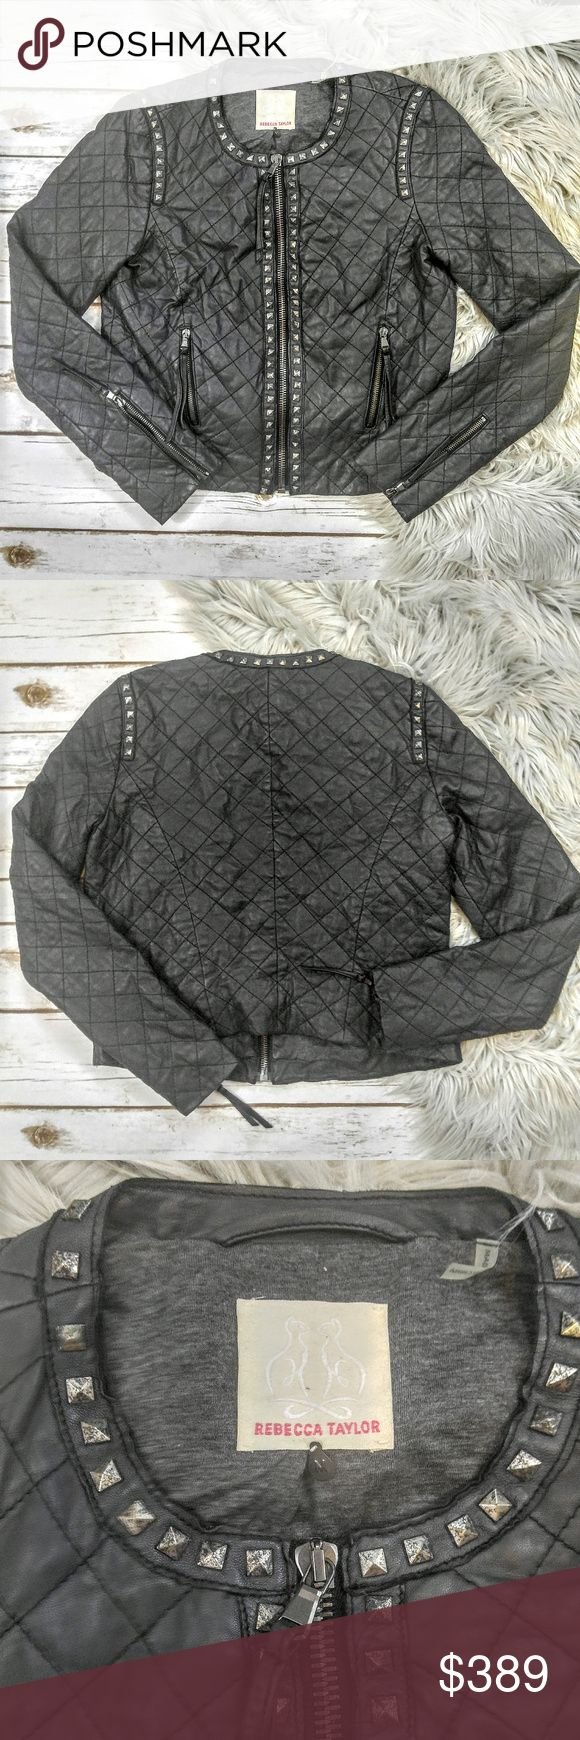 Rebecca Taylor Black Studded Leather Jacket Rebecca Taylor Black Studded Quilted Leather Jacket Size M in excellent used condition. This features wrist zippers, and two front zippered pockets. Perfect with some distressed skinny jeans and ankle booties. Let me know if you have any questions! This originally retailed for $1299 and I will consider reasonable offers. I ship the same day as long as the order is placed before 11 AM Central time. Happy poshing! Rebecca Taylor Jackets & Coats